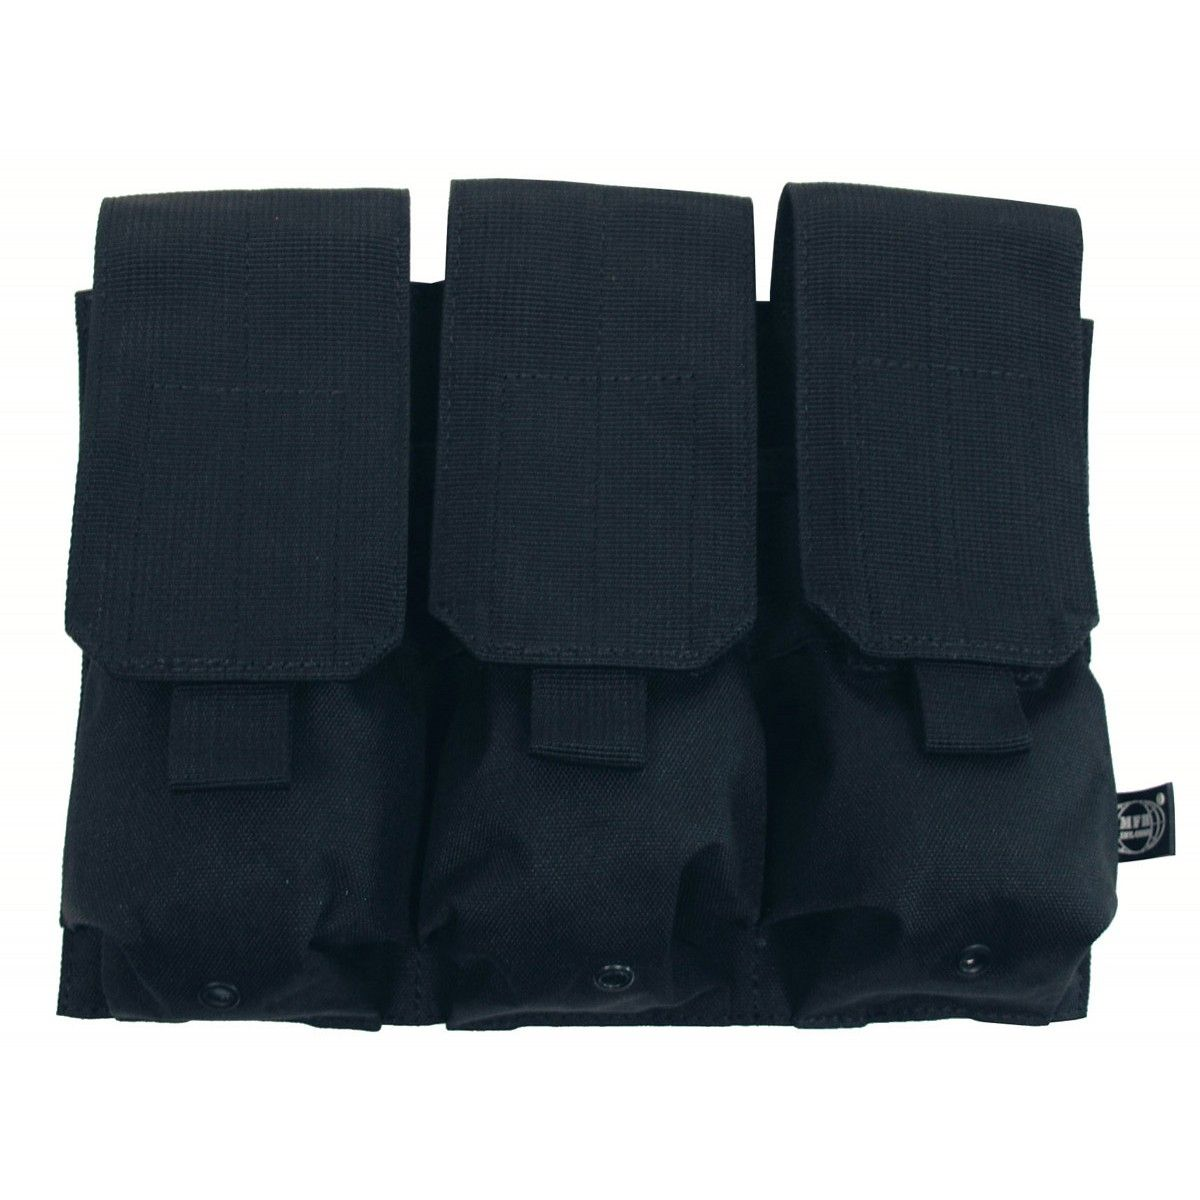 Mfh M4 Triple Magazine Pouch M16 Black